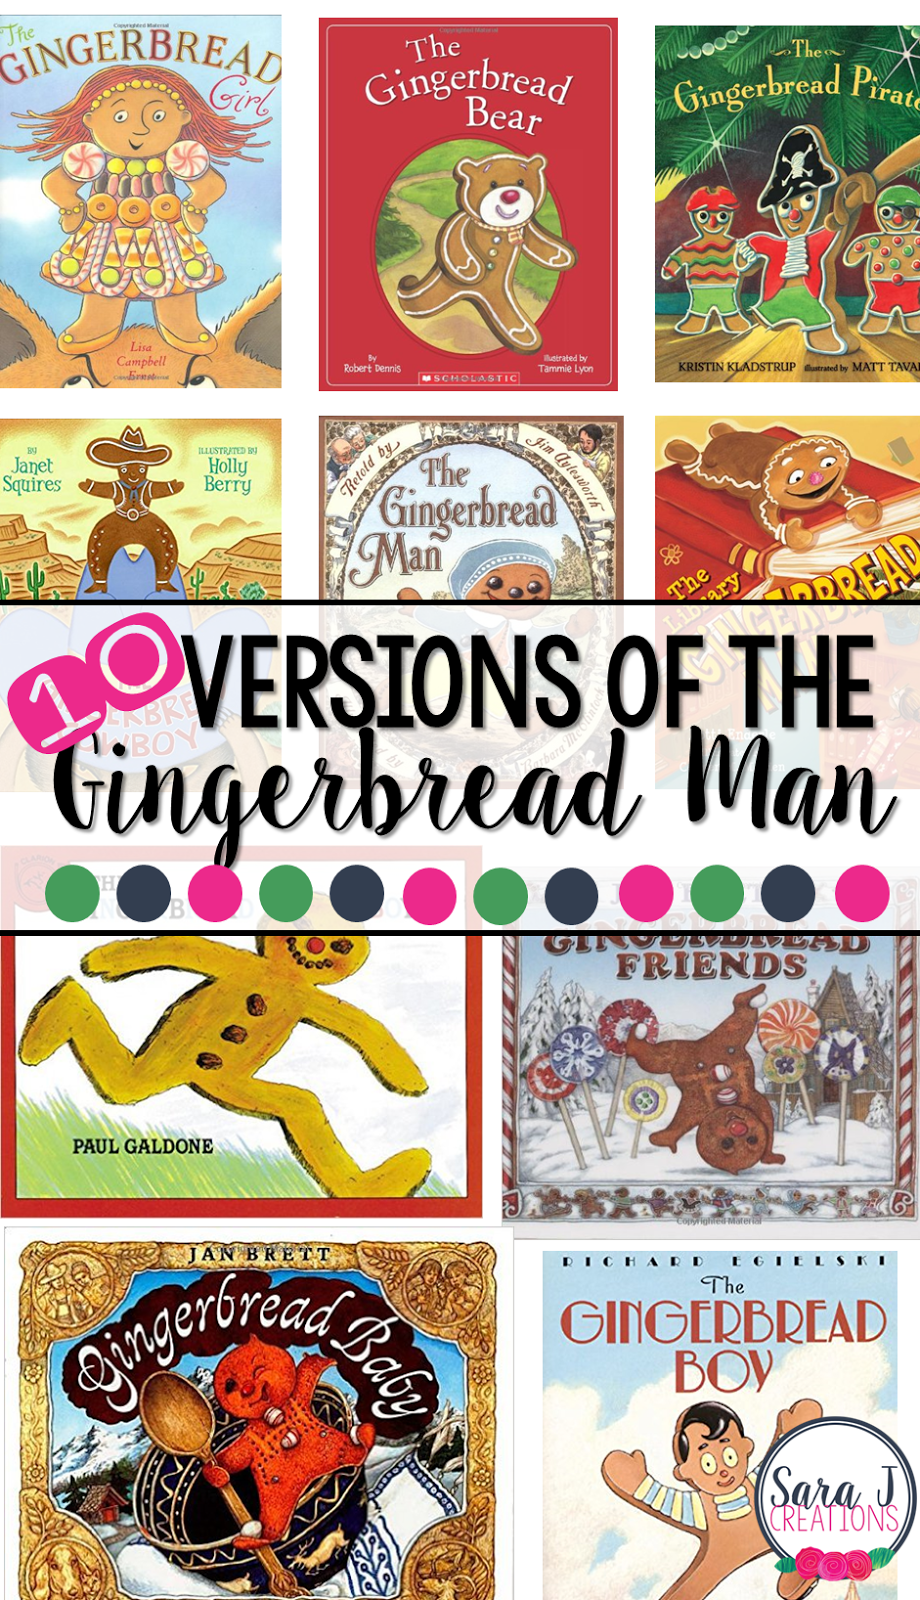 Our 10 favorite versions of the Gingerbread Man story